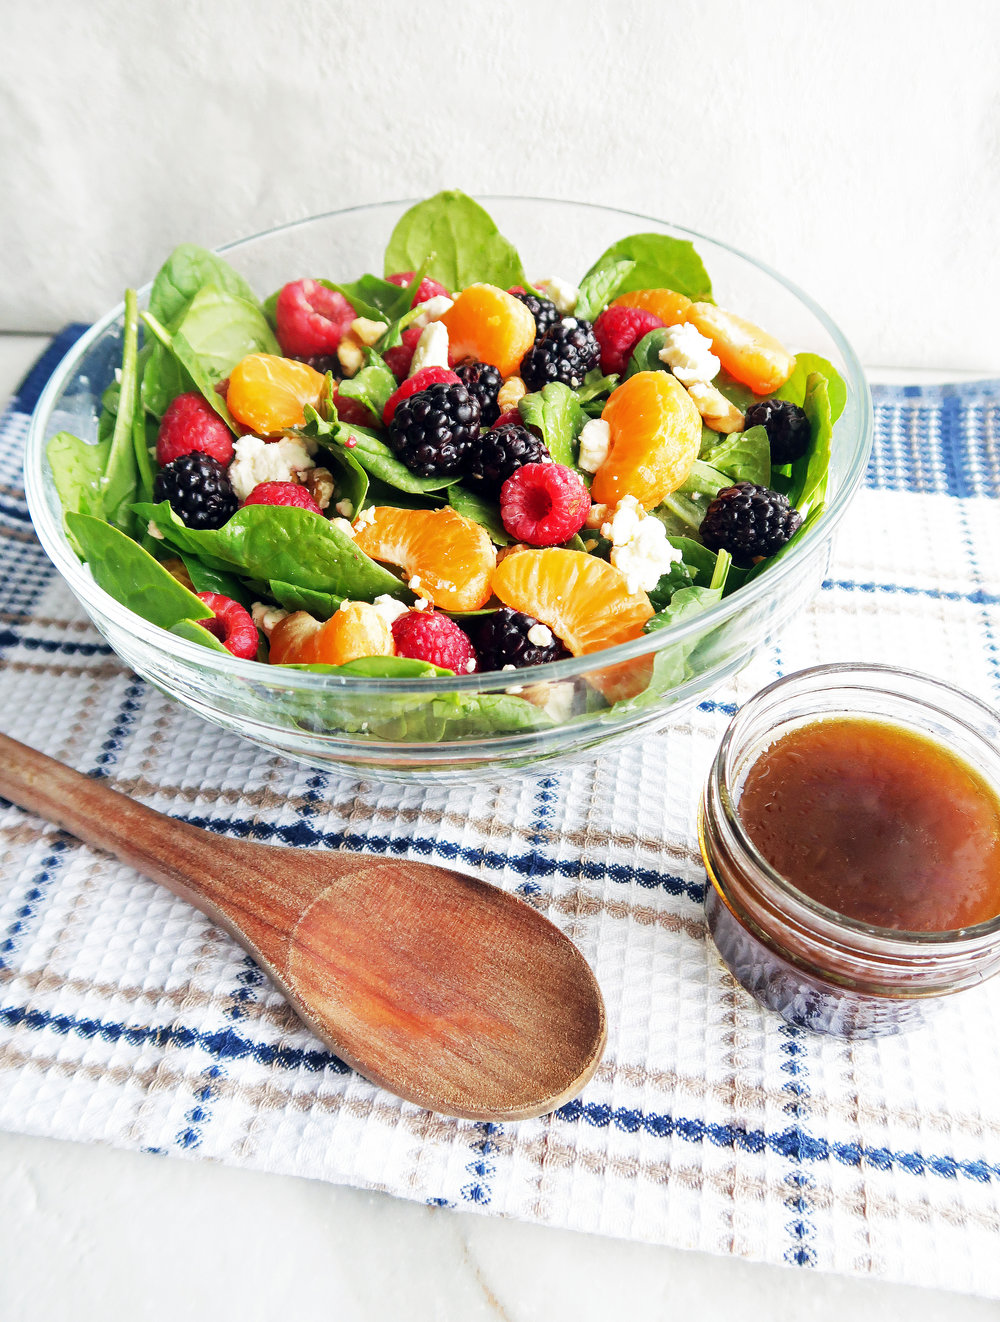 Berry Orange Spinach Salad with Citrus Balsamic Vinaigrette: A fresh, simple summer meal or side that's healthy and delicious! www.yayforfood.com